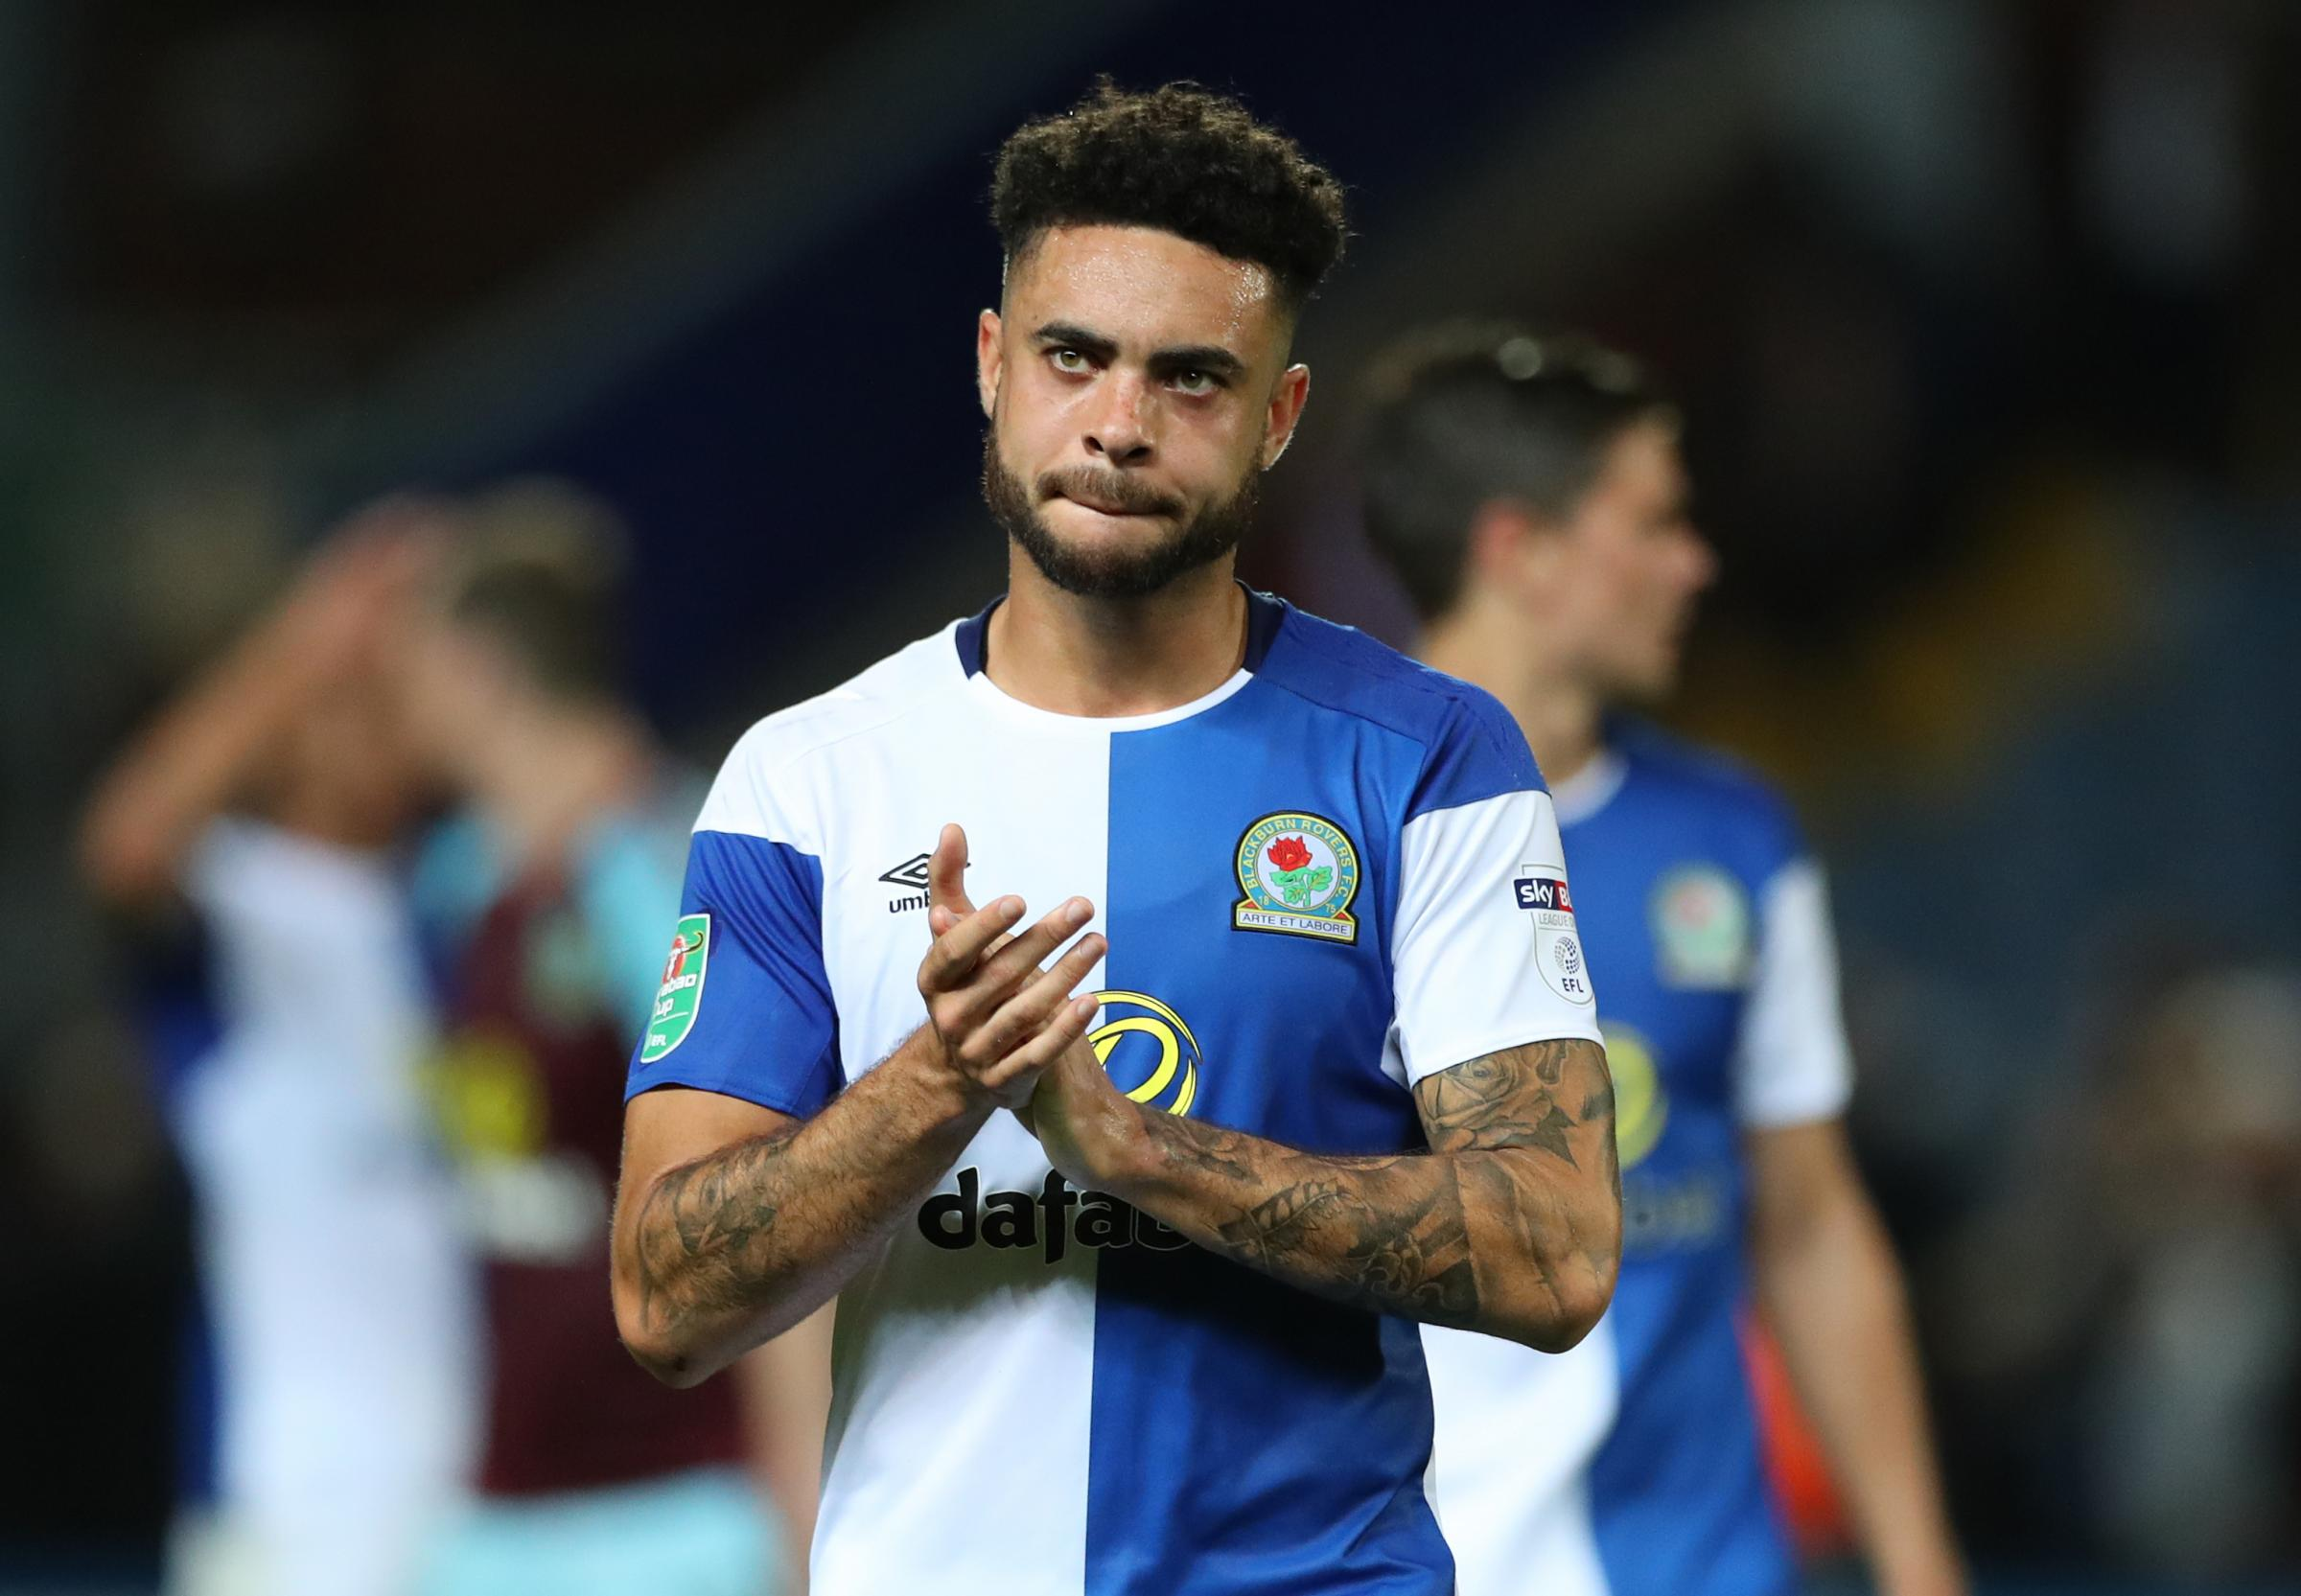 PRESSURE TO PERFORM: Derrick Williams says Rovers must bounce back after Burnley defeat